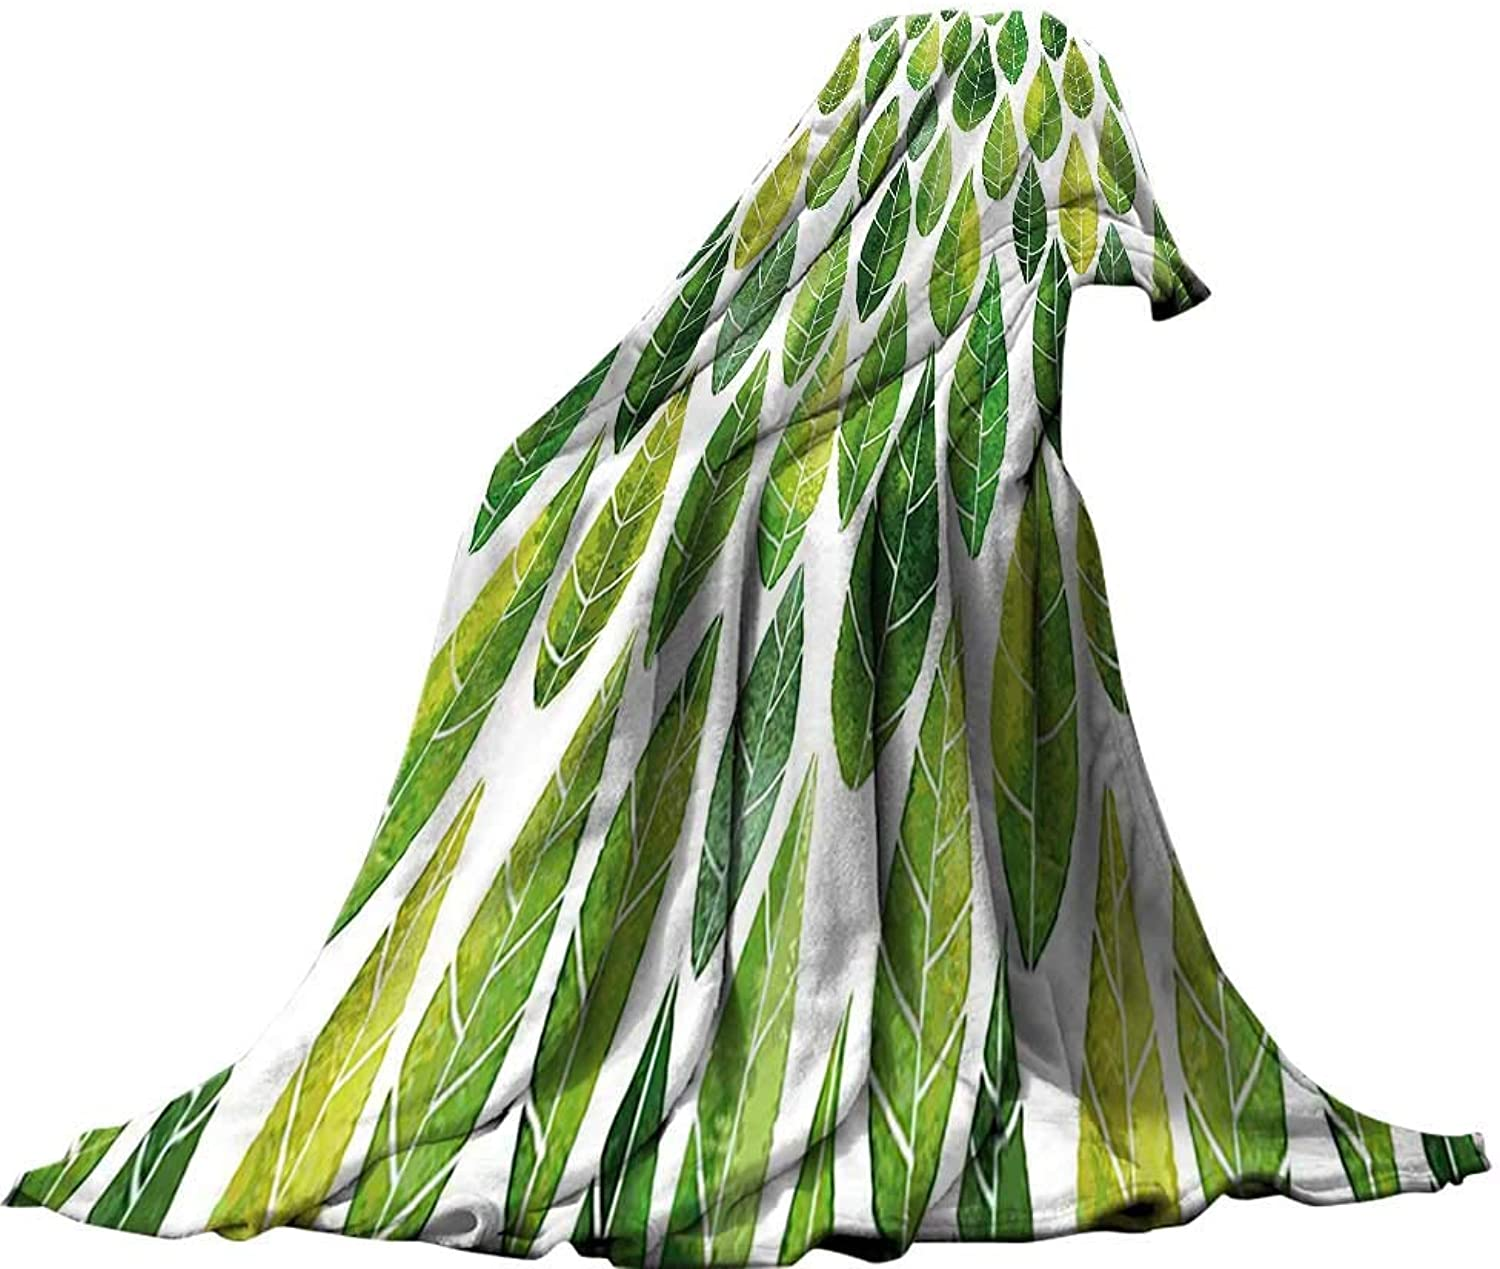 QINYAN-Home Soft Travel Blanket(60 x60 ) Summer Quilt Comforter Green Decor Watercolor Forest Leaves Abstract Image in Order Art Print Forest Green and Light Green.